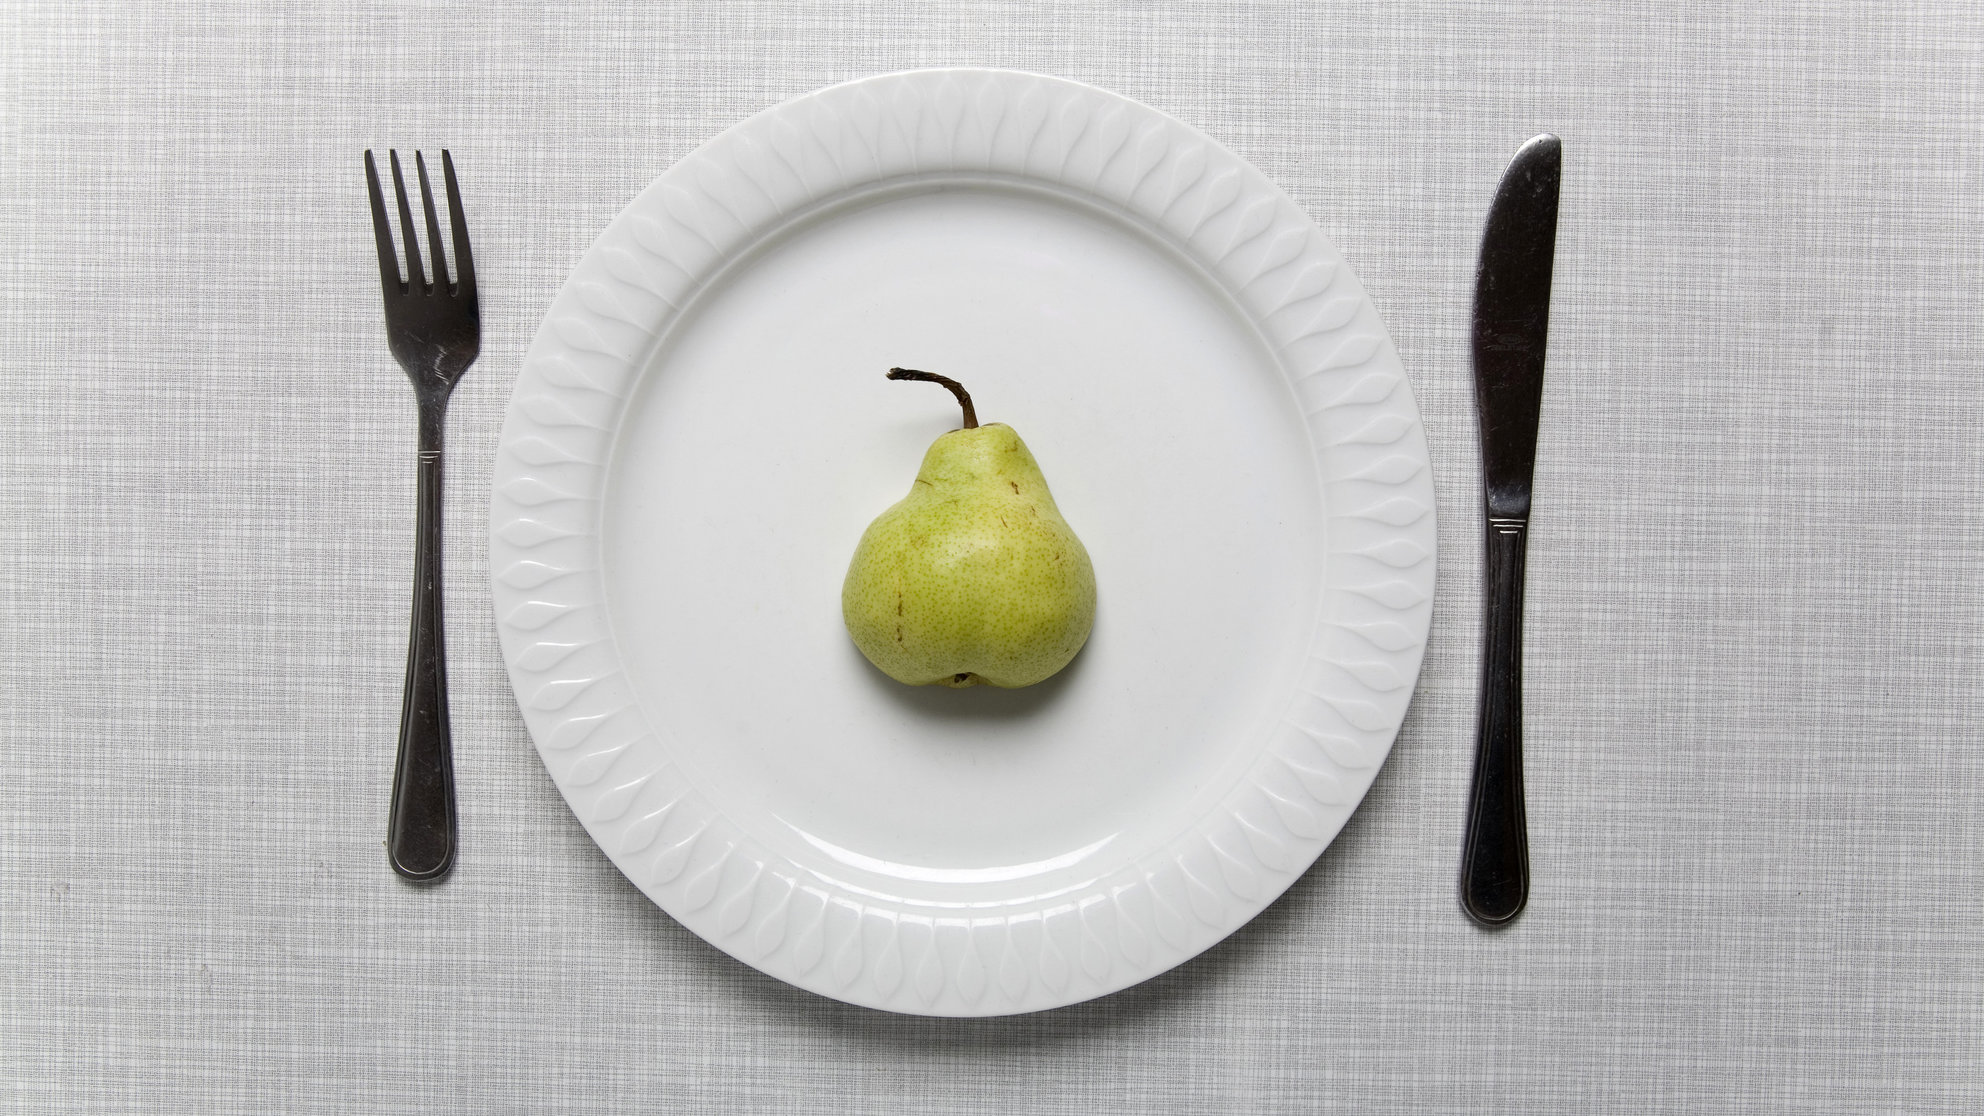 Intermittent Fasting Is All the Rage These Days, But Is It Healthy?